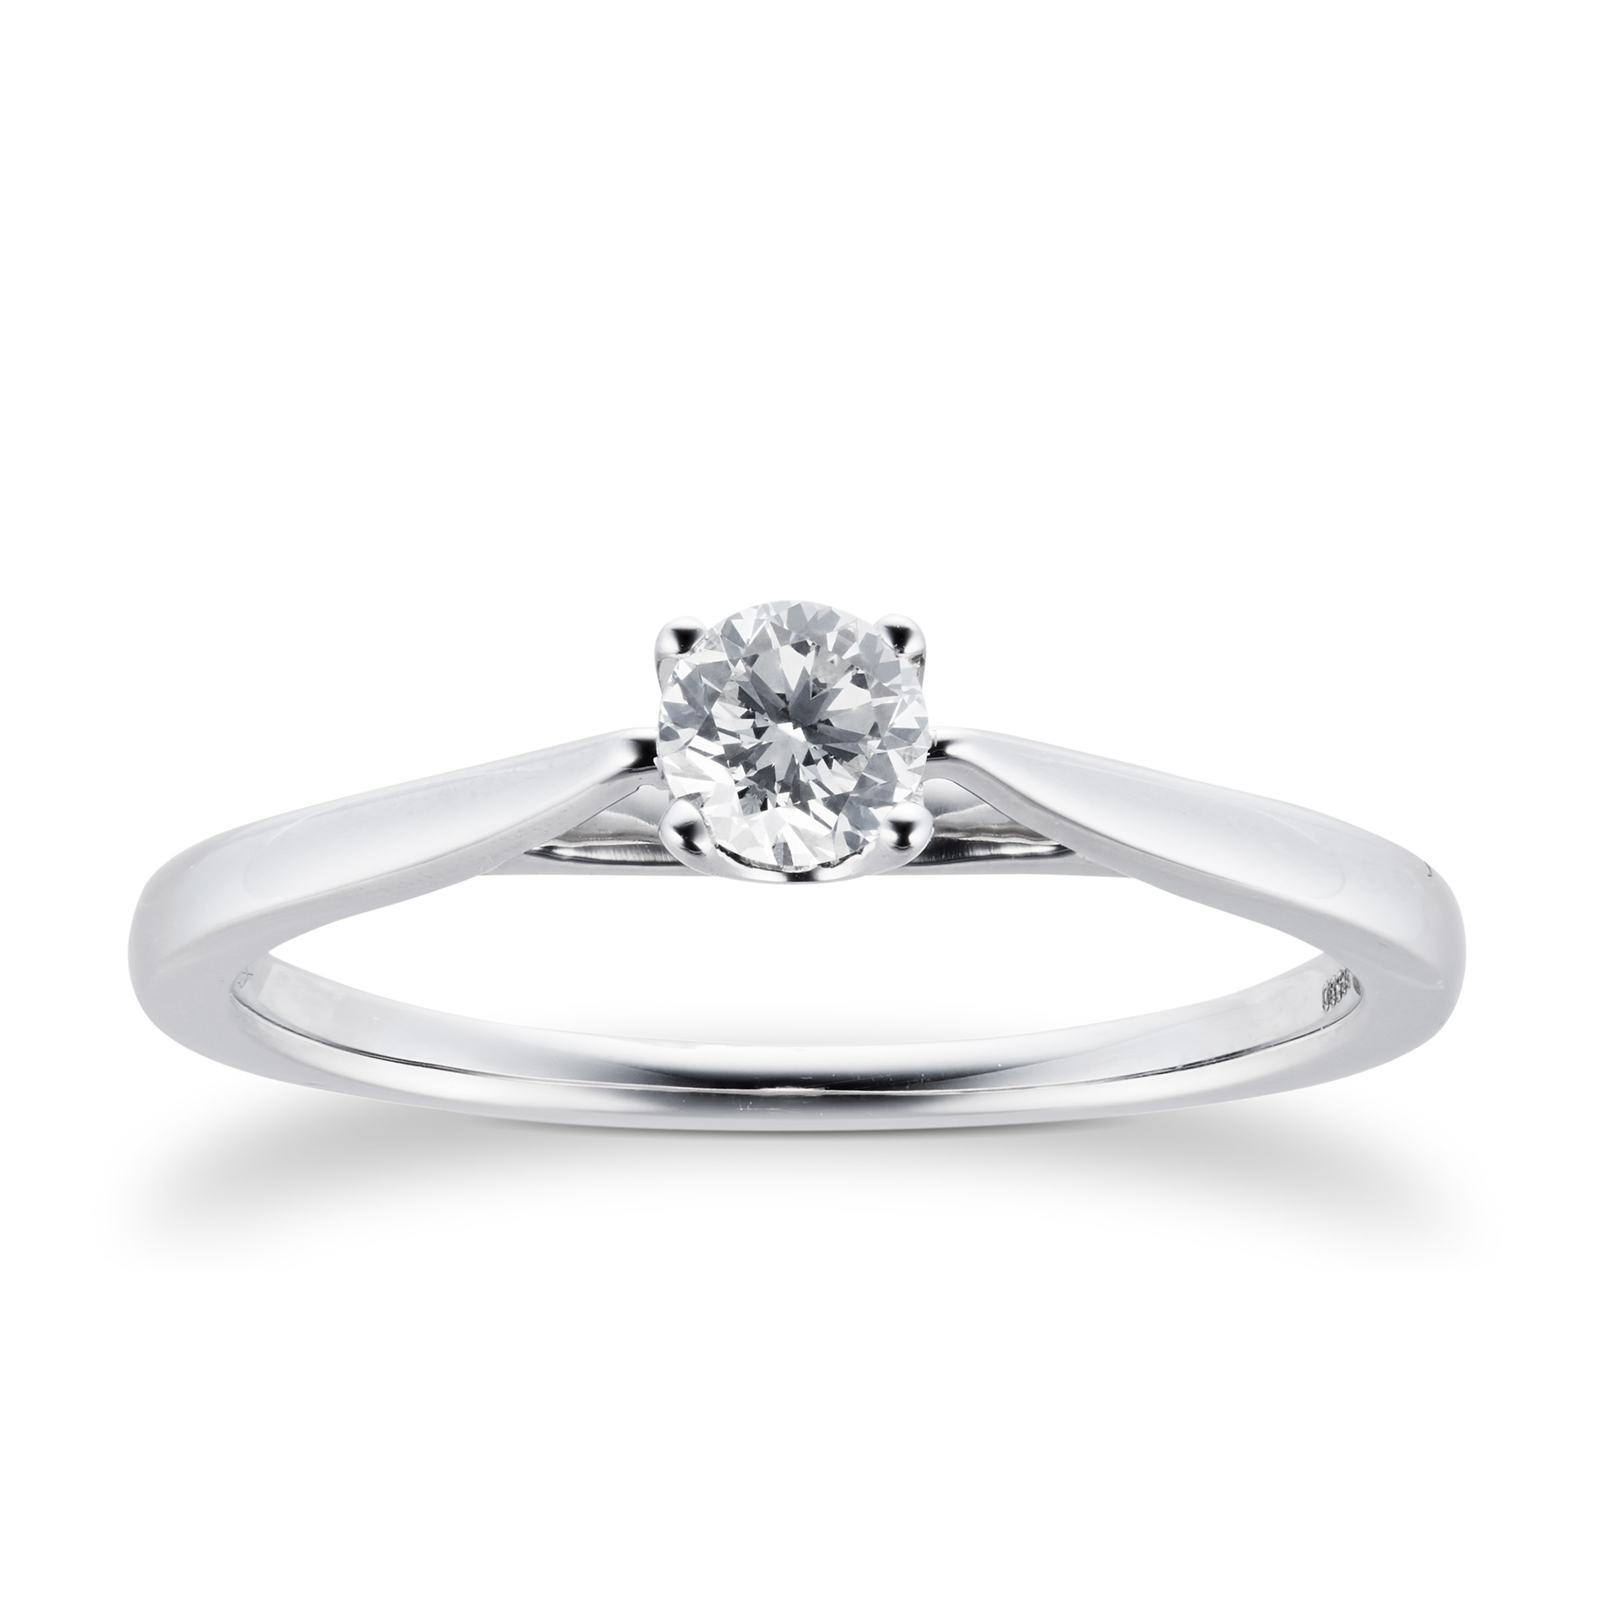 Platinum Brilliant Cut 0.25 Carat 88 Facet Diamond Ring - Ring Size J